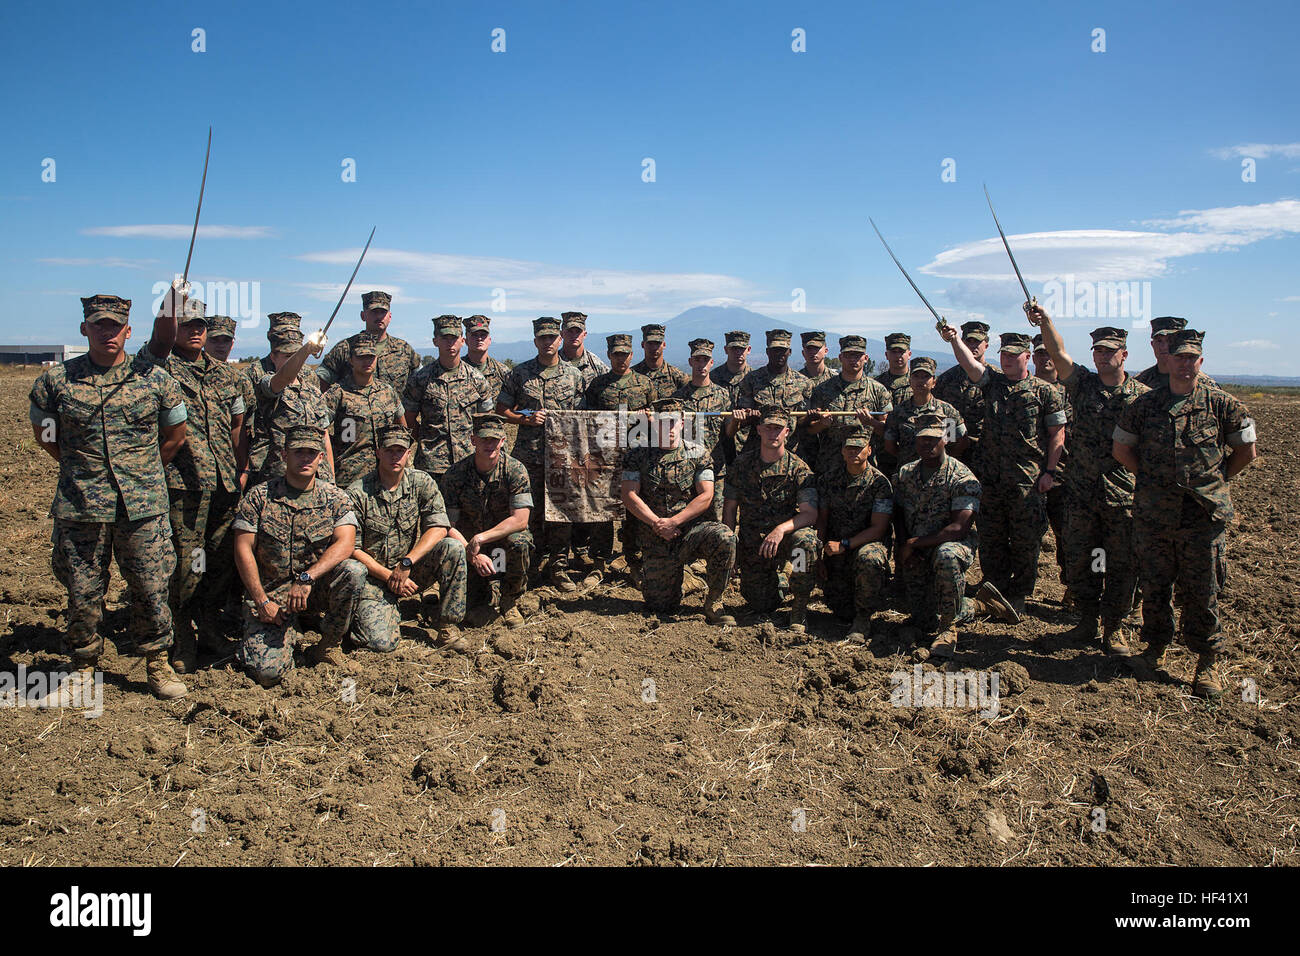 Sword In Ground Stockfotos & Sword In Ground Bilder - Alamy